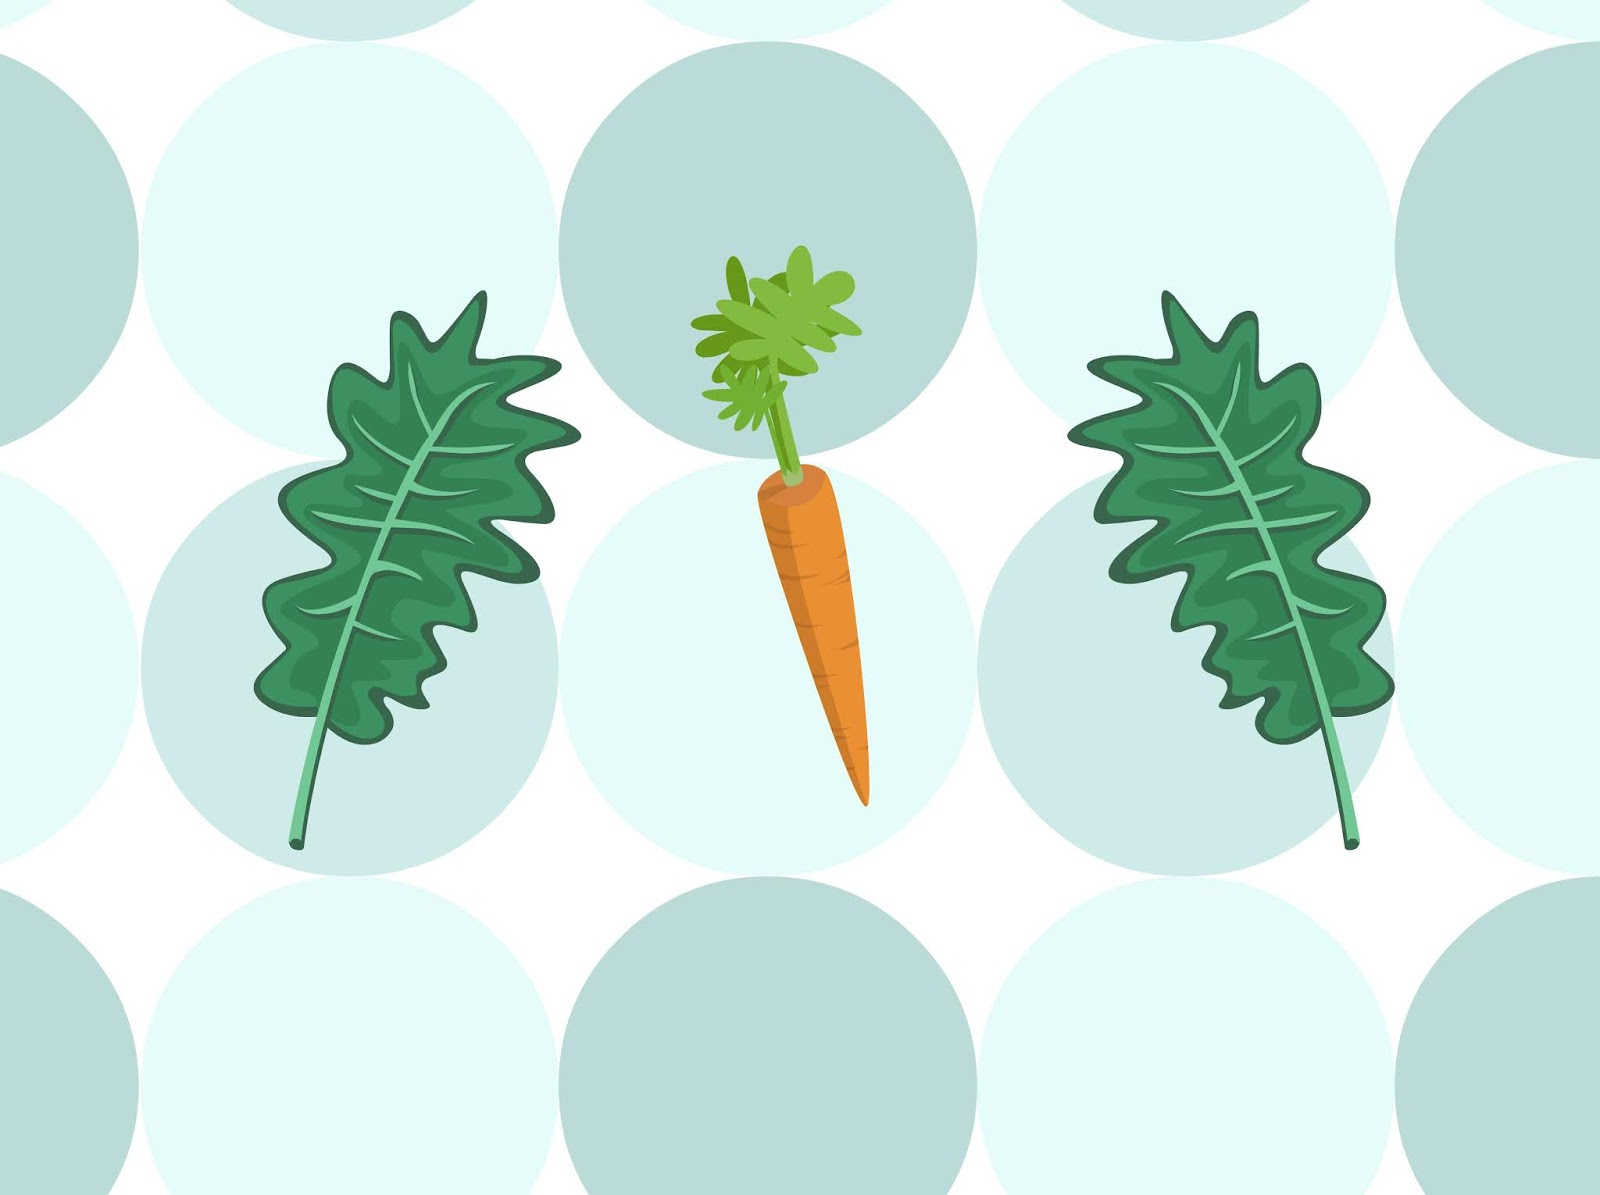 A Veggie Illustration With Lettuce Leaves and Carrots